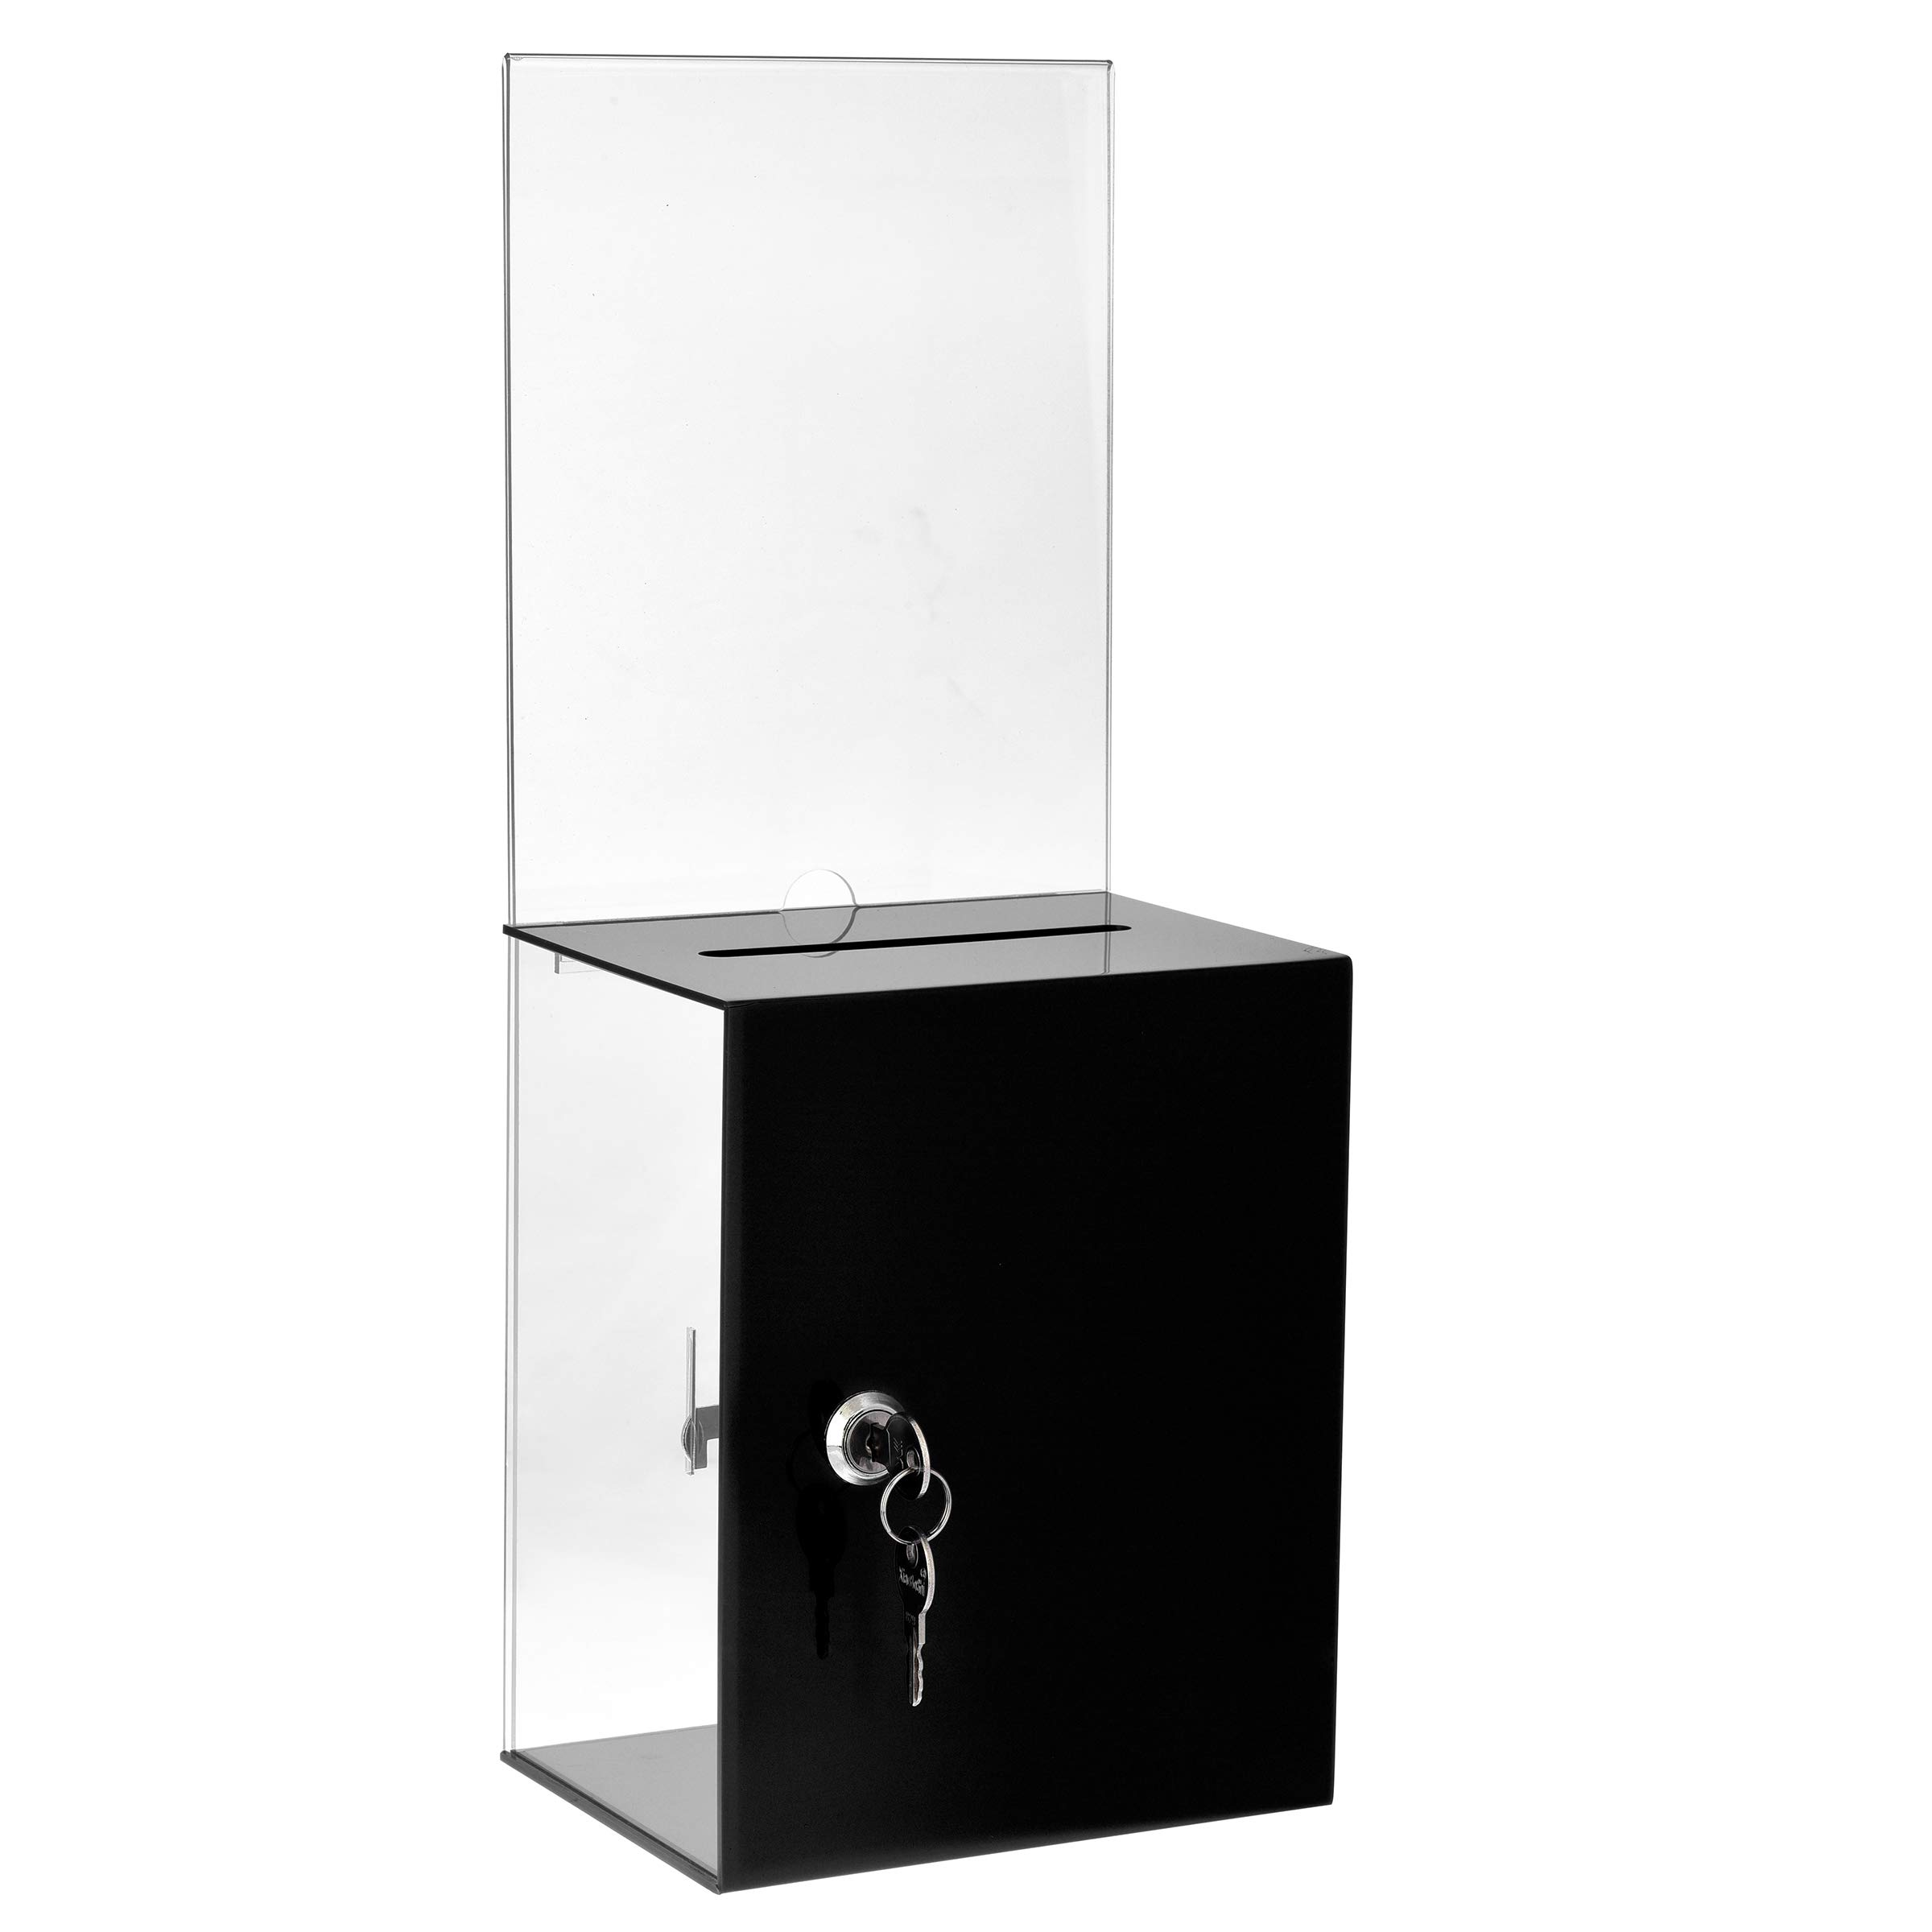 AdirOffice Tall Acrylic Box for Suggestions/Donation Box - Tip Box - Deposit Box - Ballot Box for Home Office and Schools (Black)